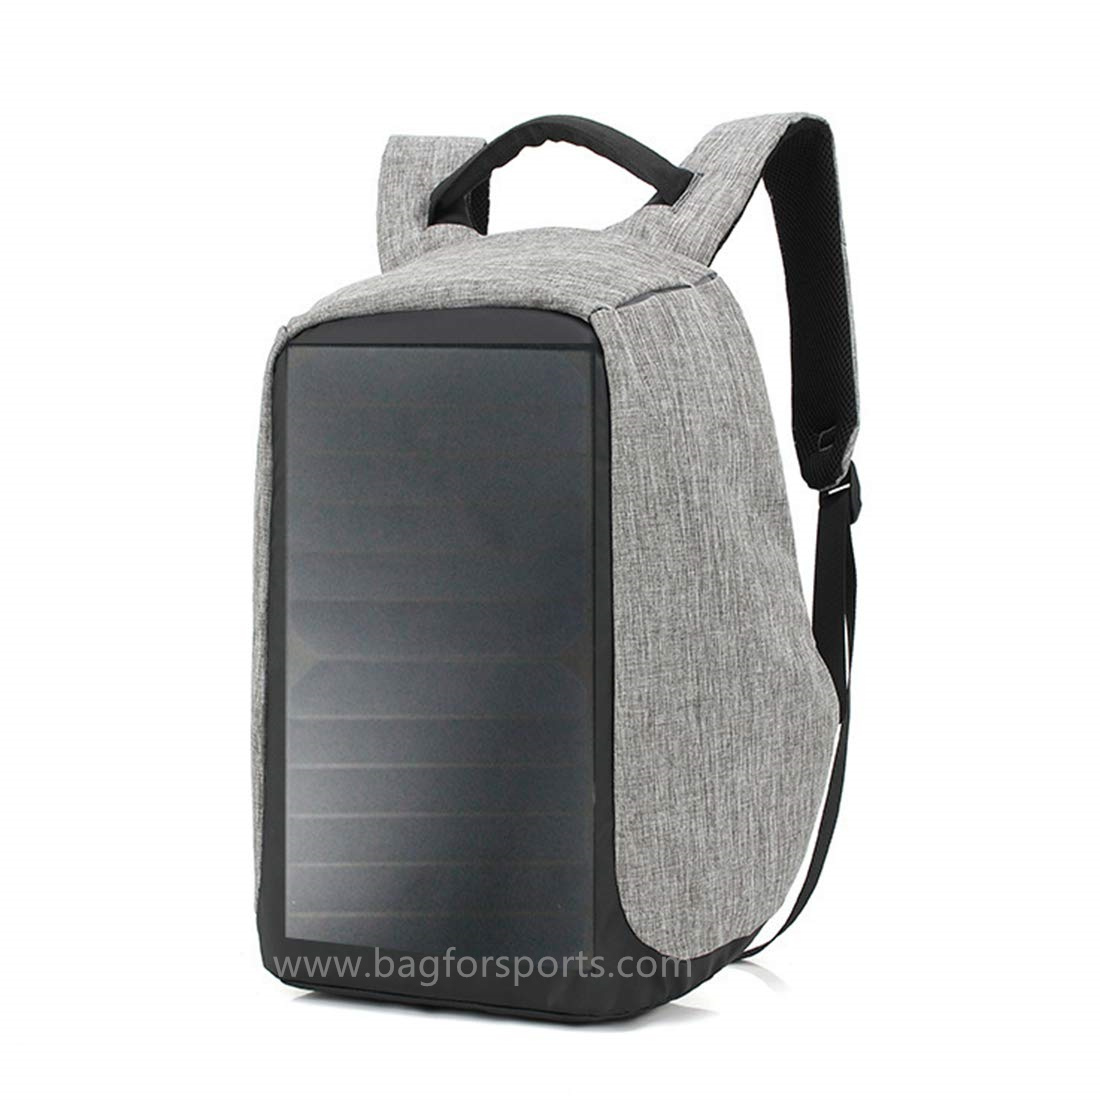 6W Solar Backpack Anti-Theft Waterproof, for Carrying Books Or Laptop to Work, School Or Hiking, Cha